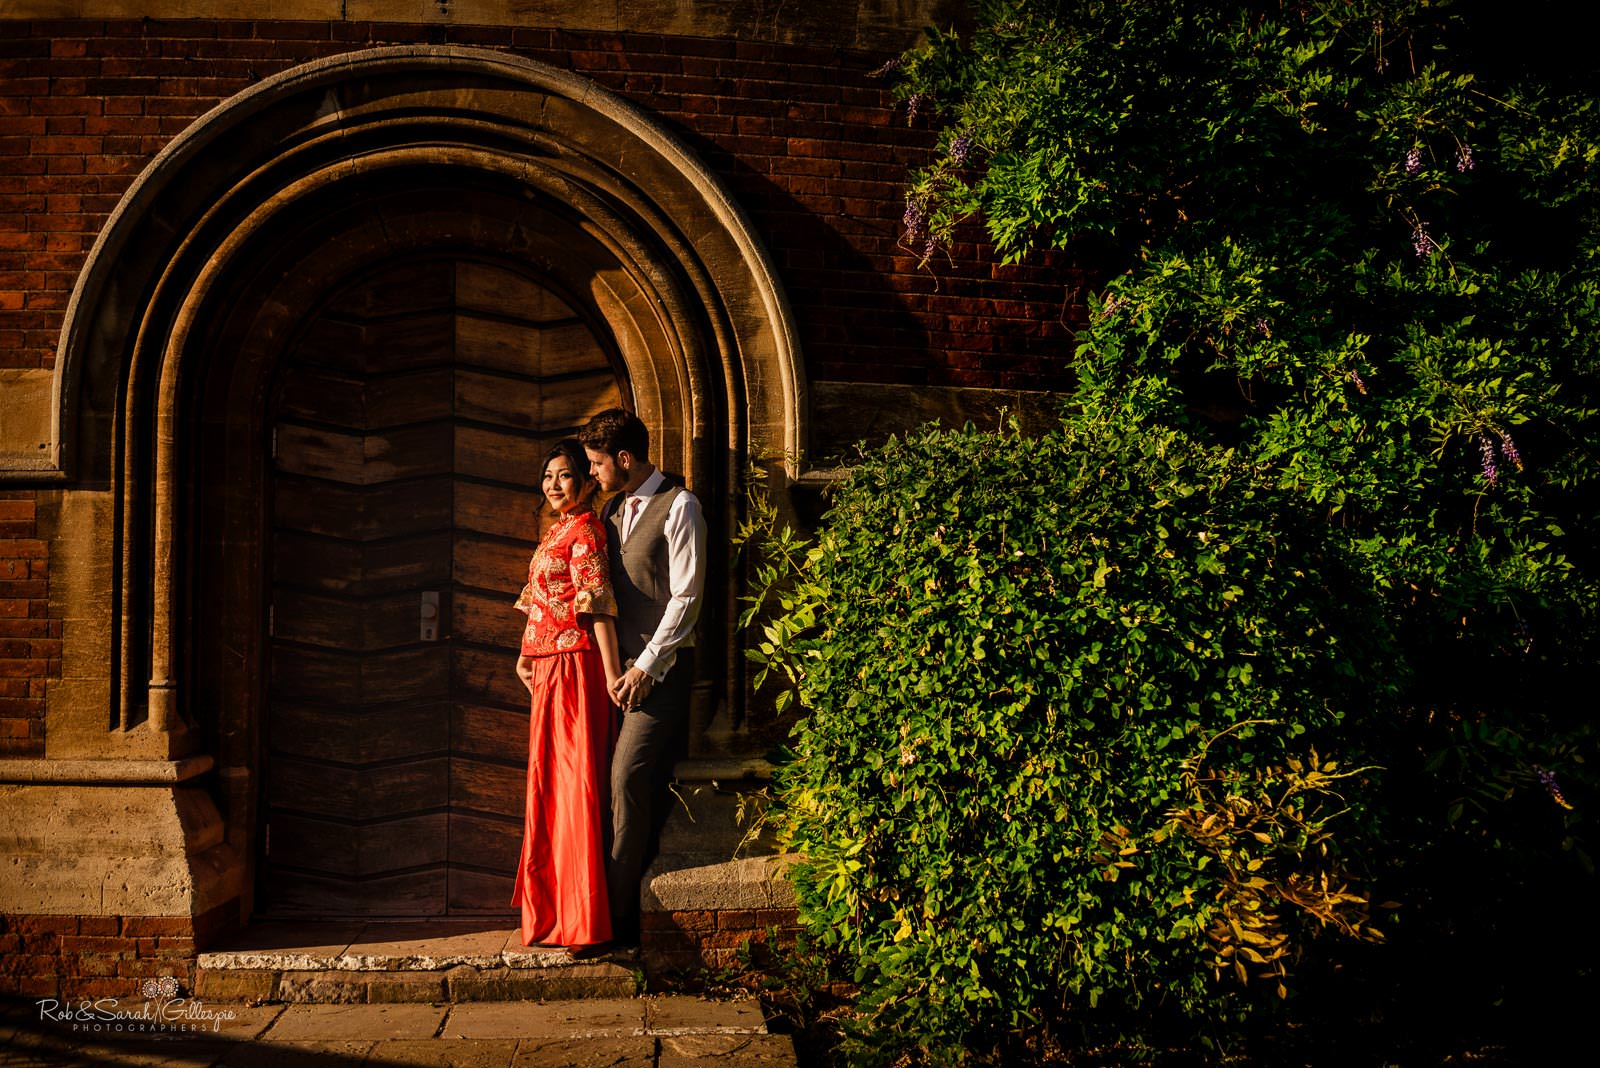 Bride and groom together at RSC in Stratford upon Avon